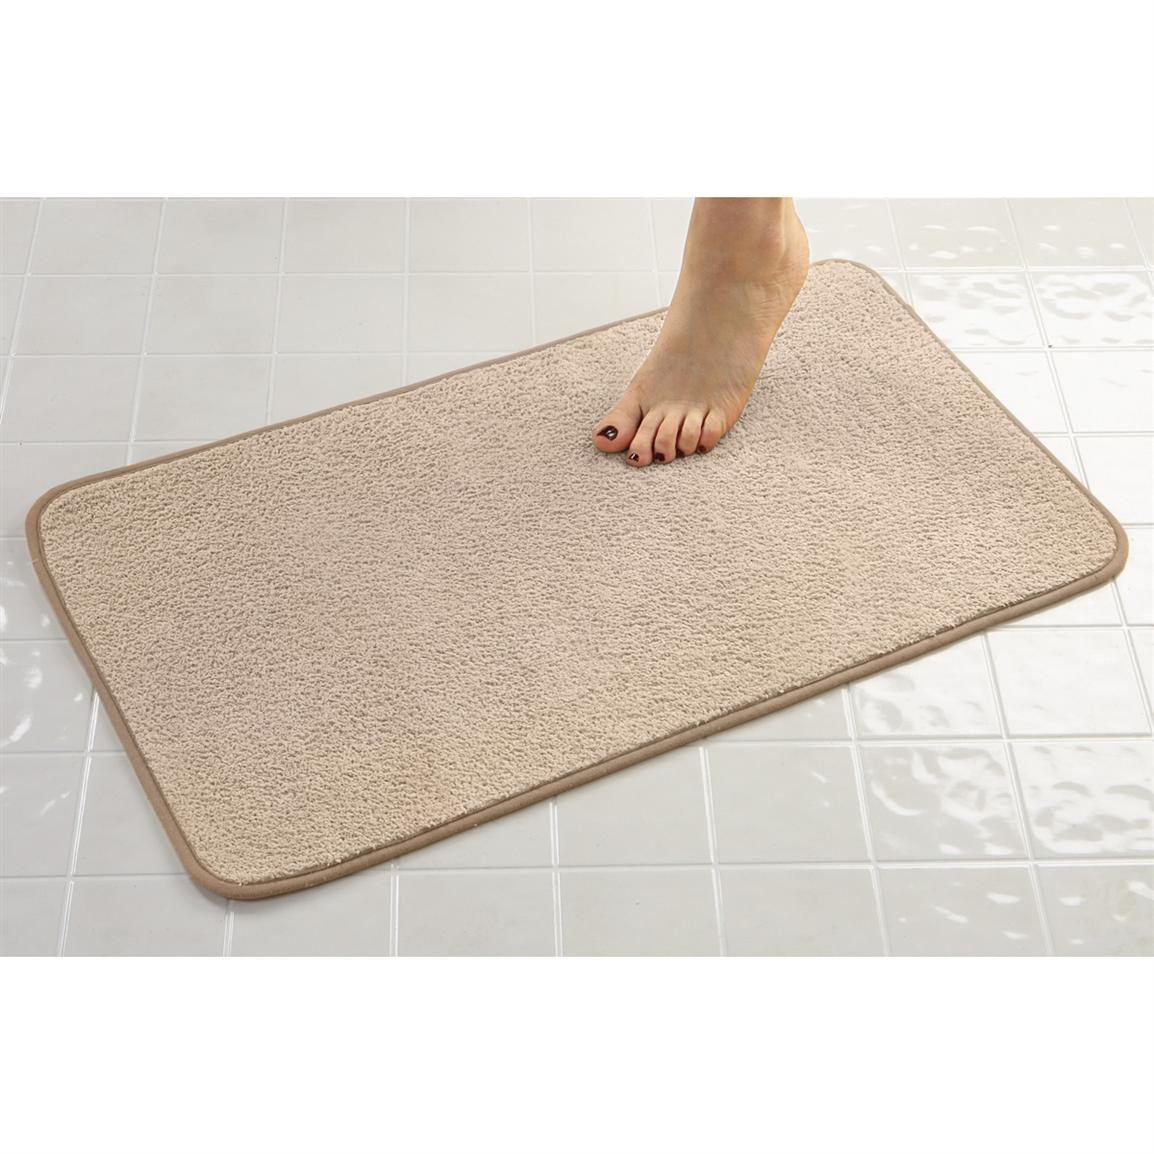 mat unique bathroom rugs sets habidecor bath hot best set carpet enjoyable sale floor abyss for rug foam mats uk on memory